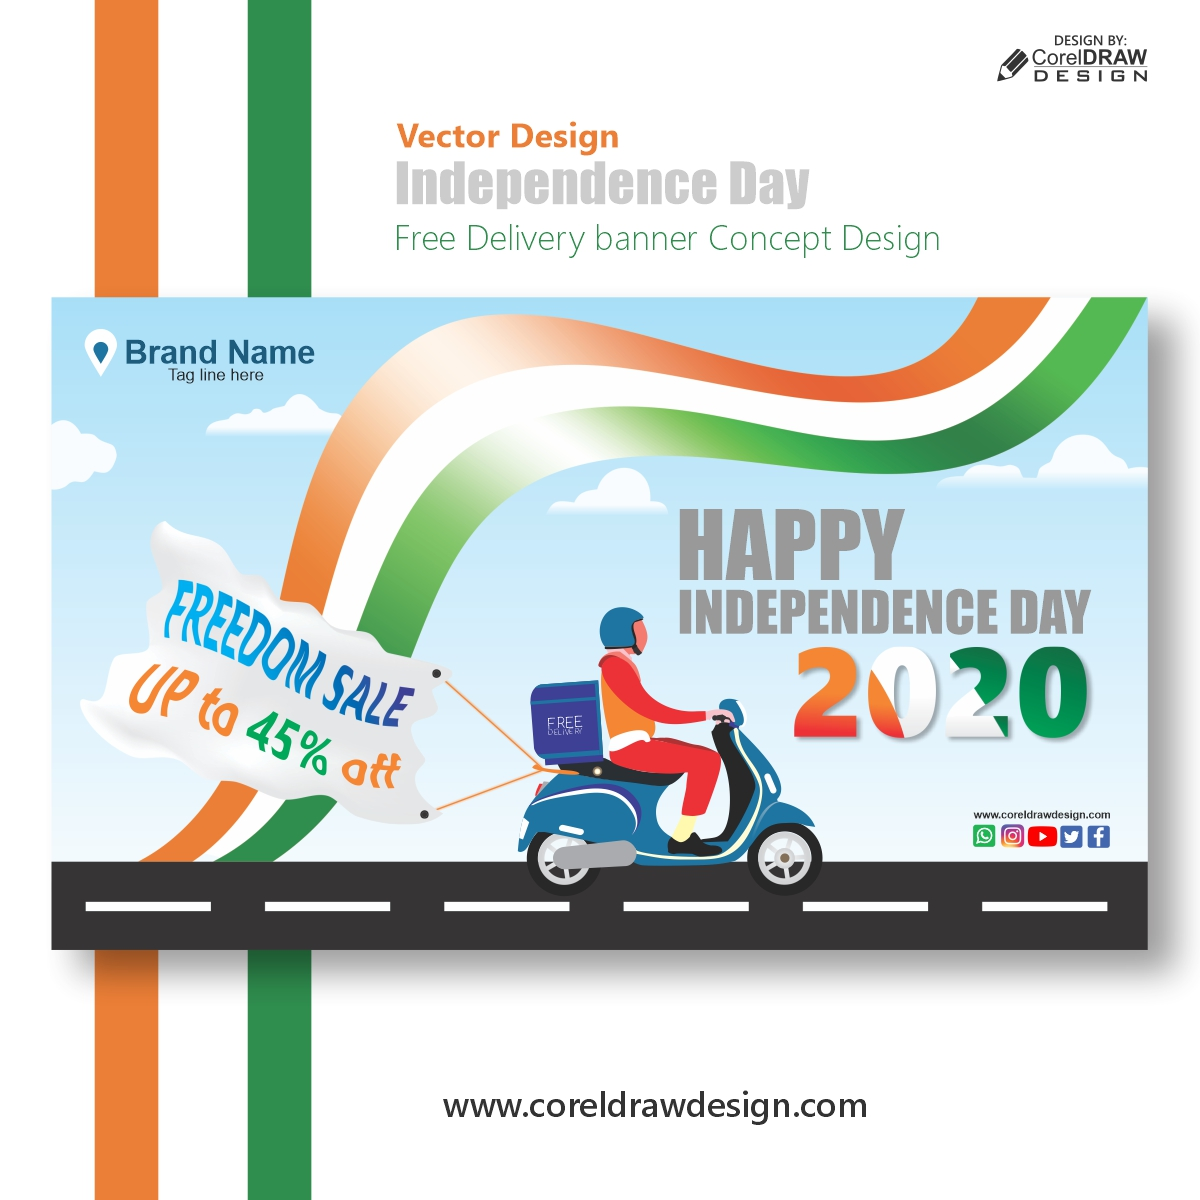 Independence Day  Free Delivery banner Concept Design